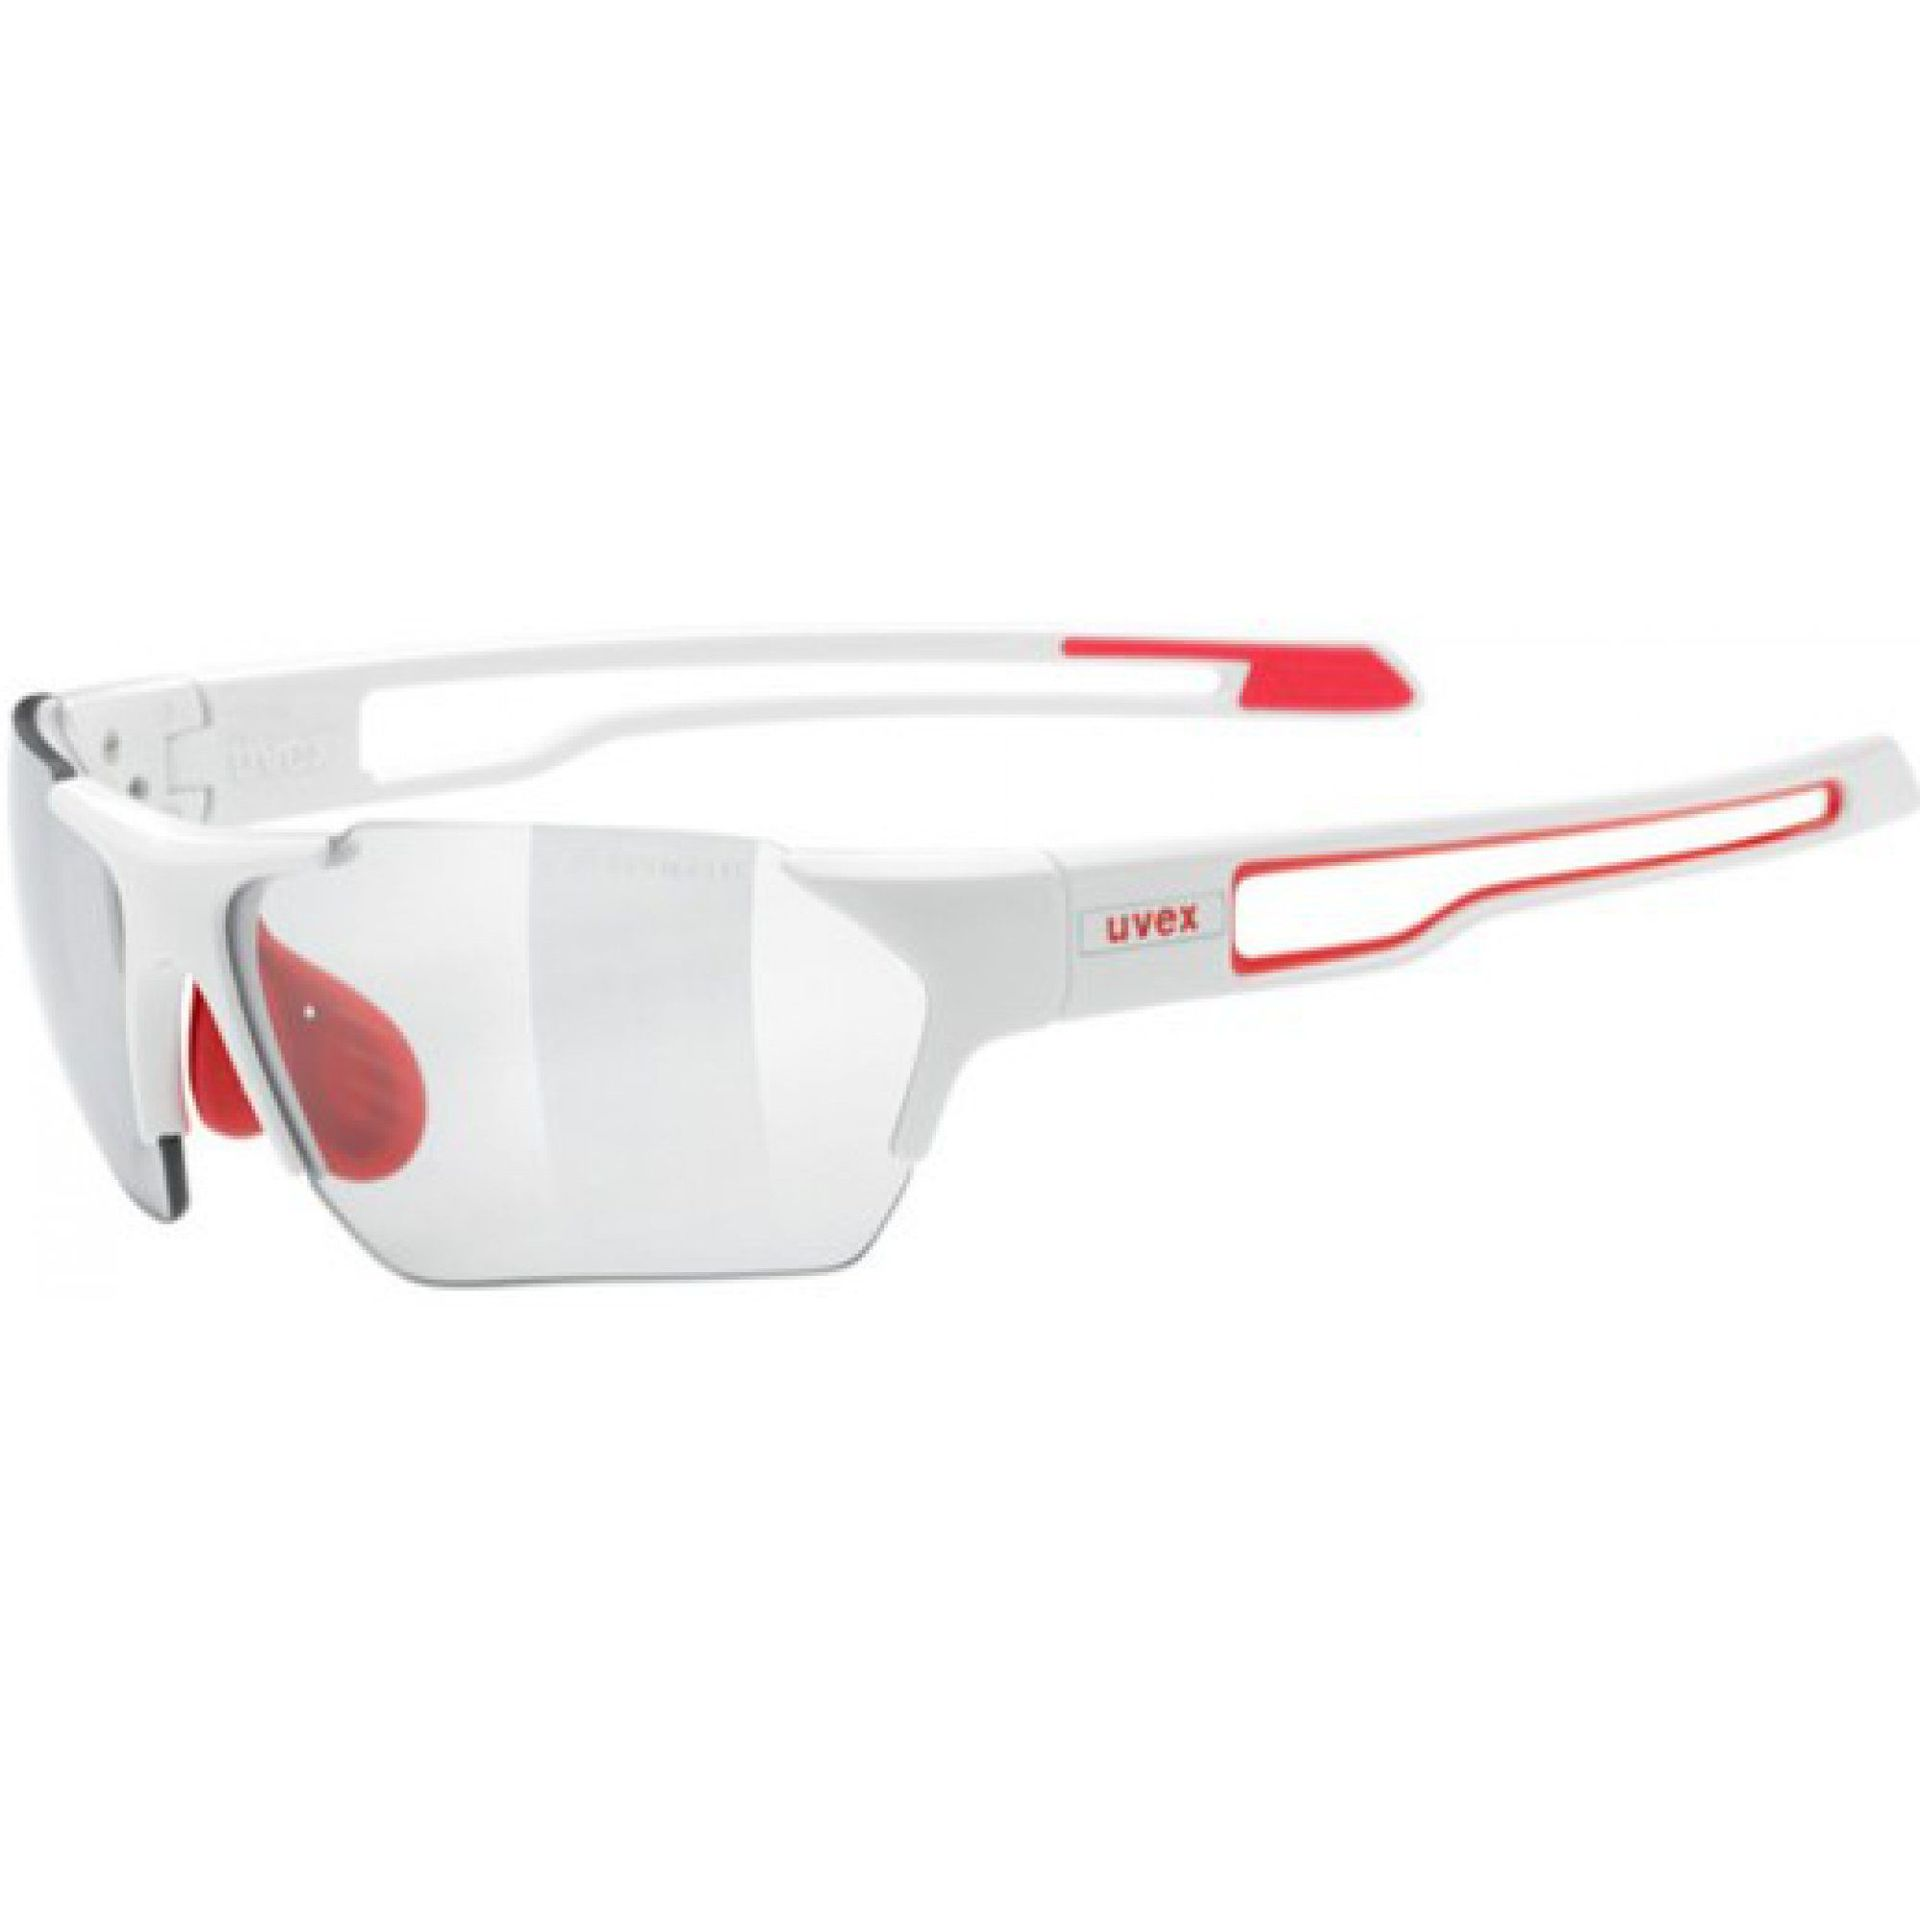 OKULARY UVEX SPORTSTYLE 202 SMALL V WHITE RED